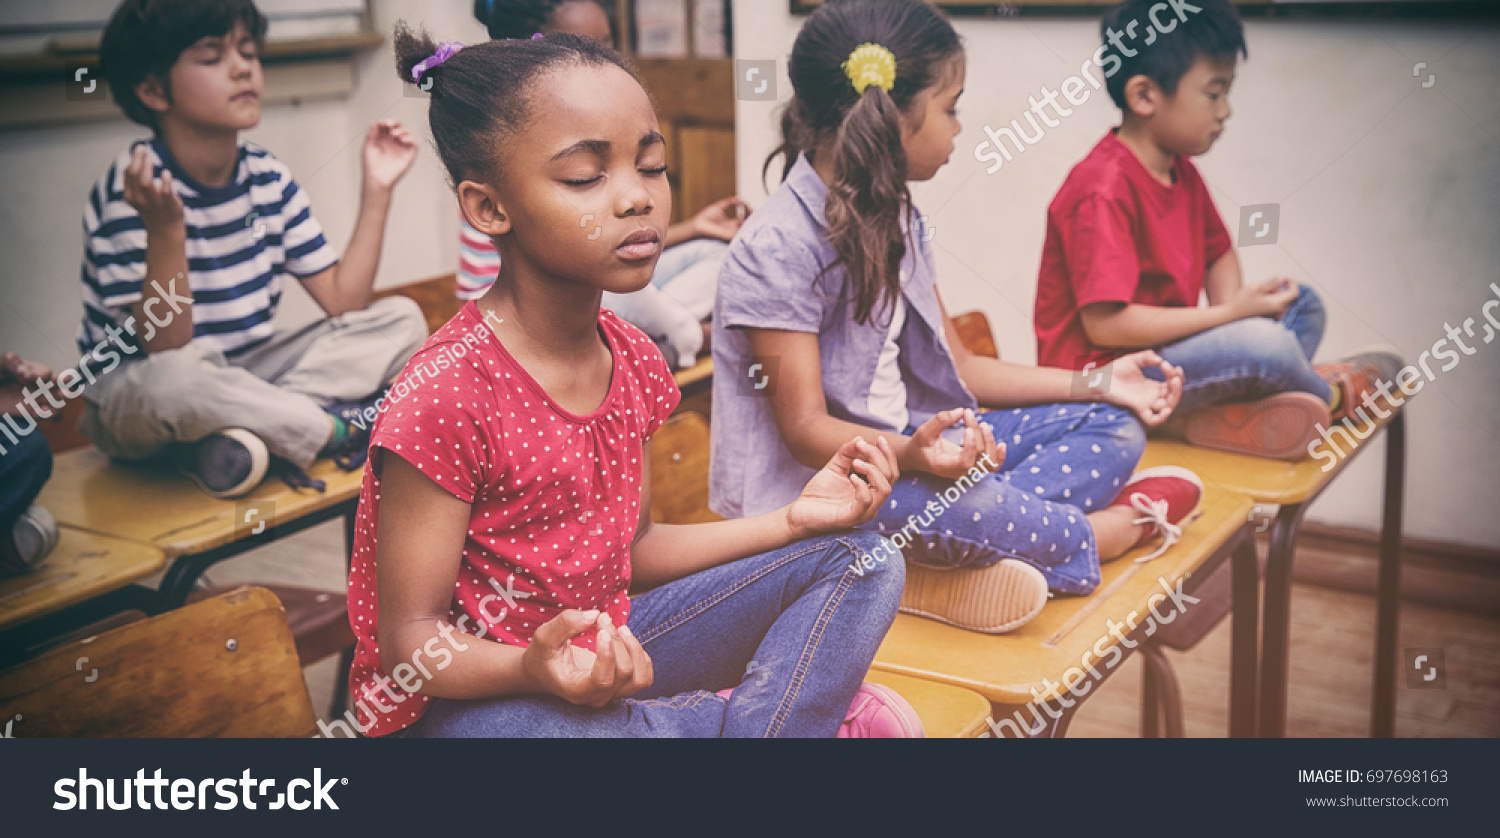 Pupils meditating in lotus position on desk in classroom at the elementary school #697698163